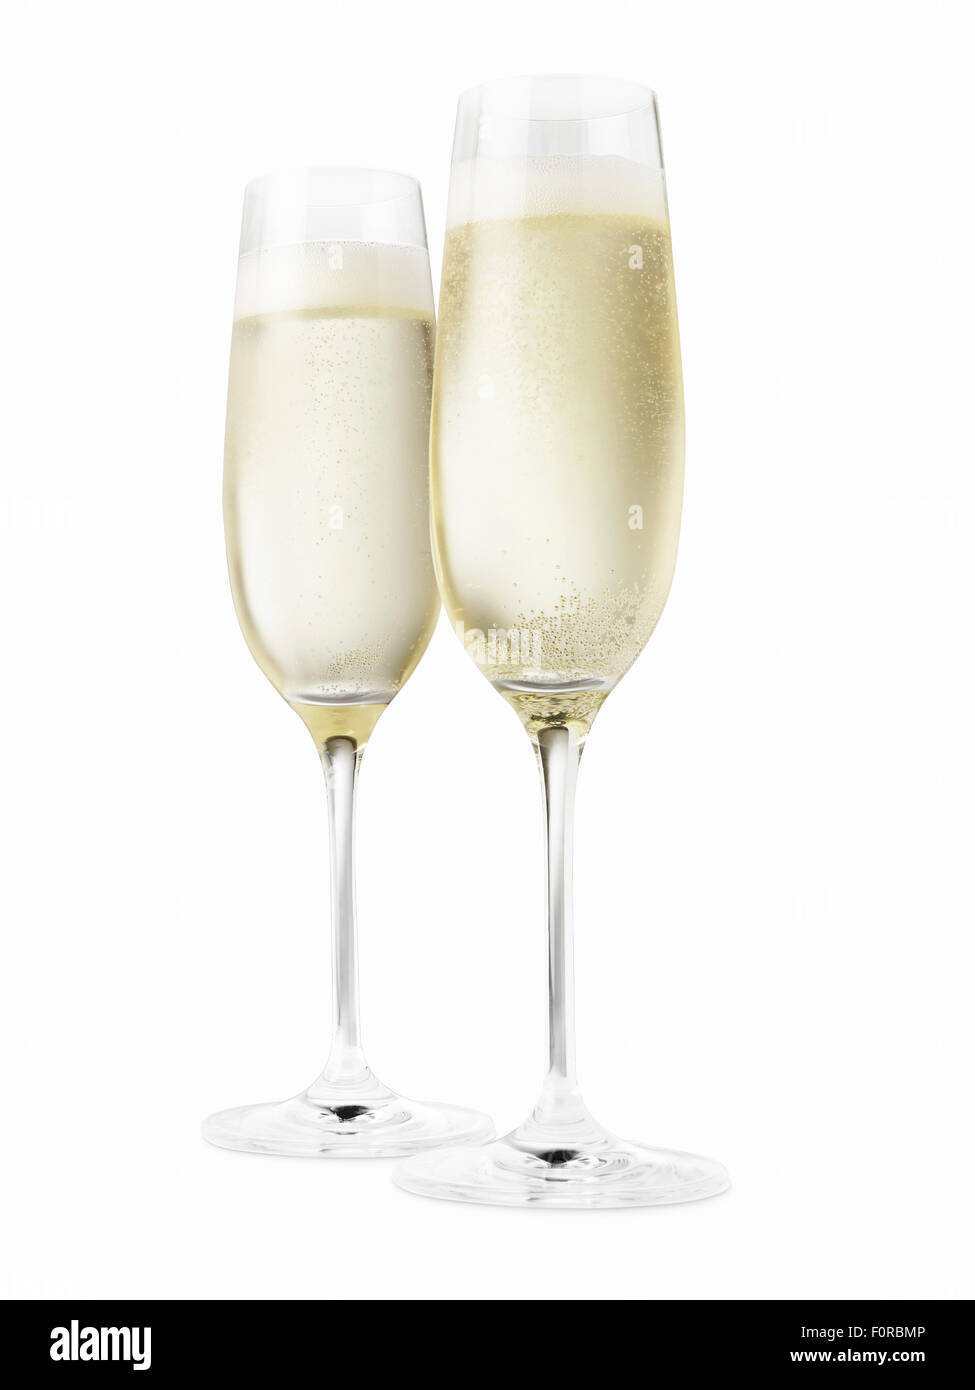 Studio shot of two champagne glasses isolated on a white background. Please note the chilled nature of the liquid - Stock Image